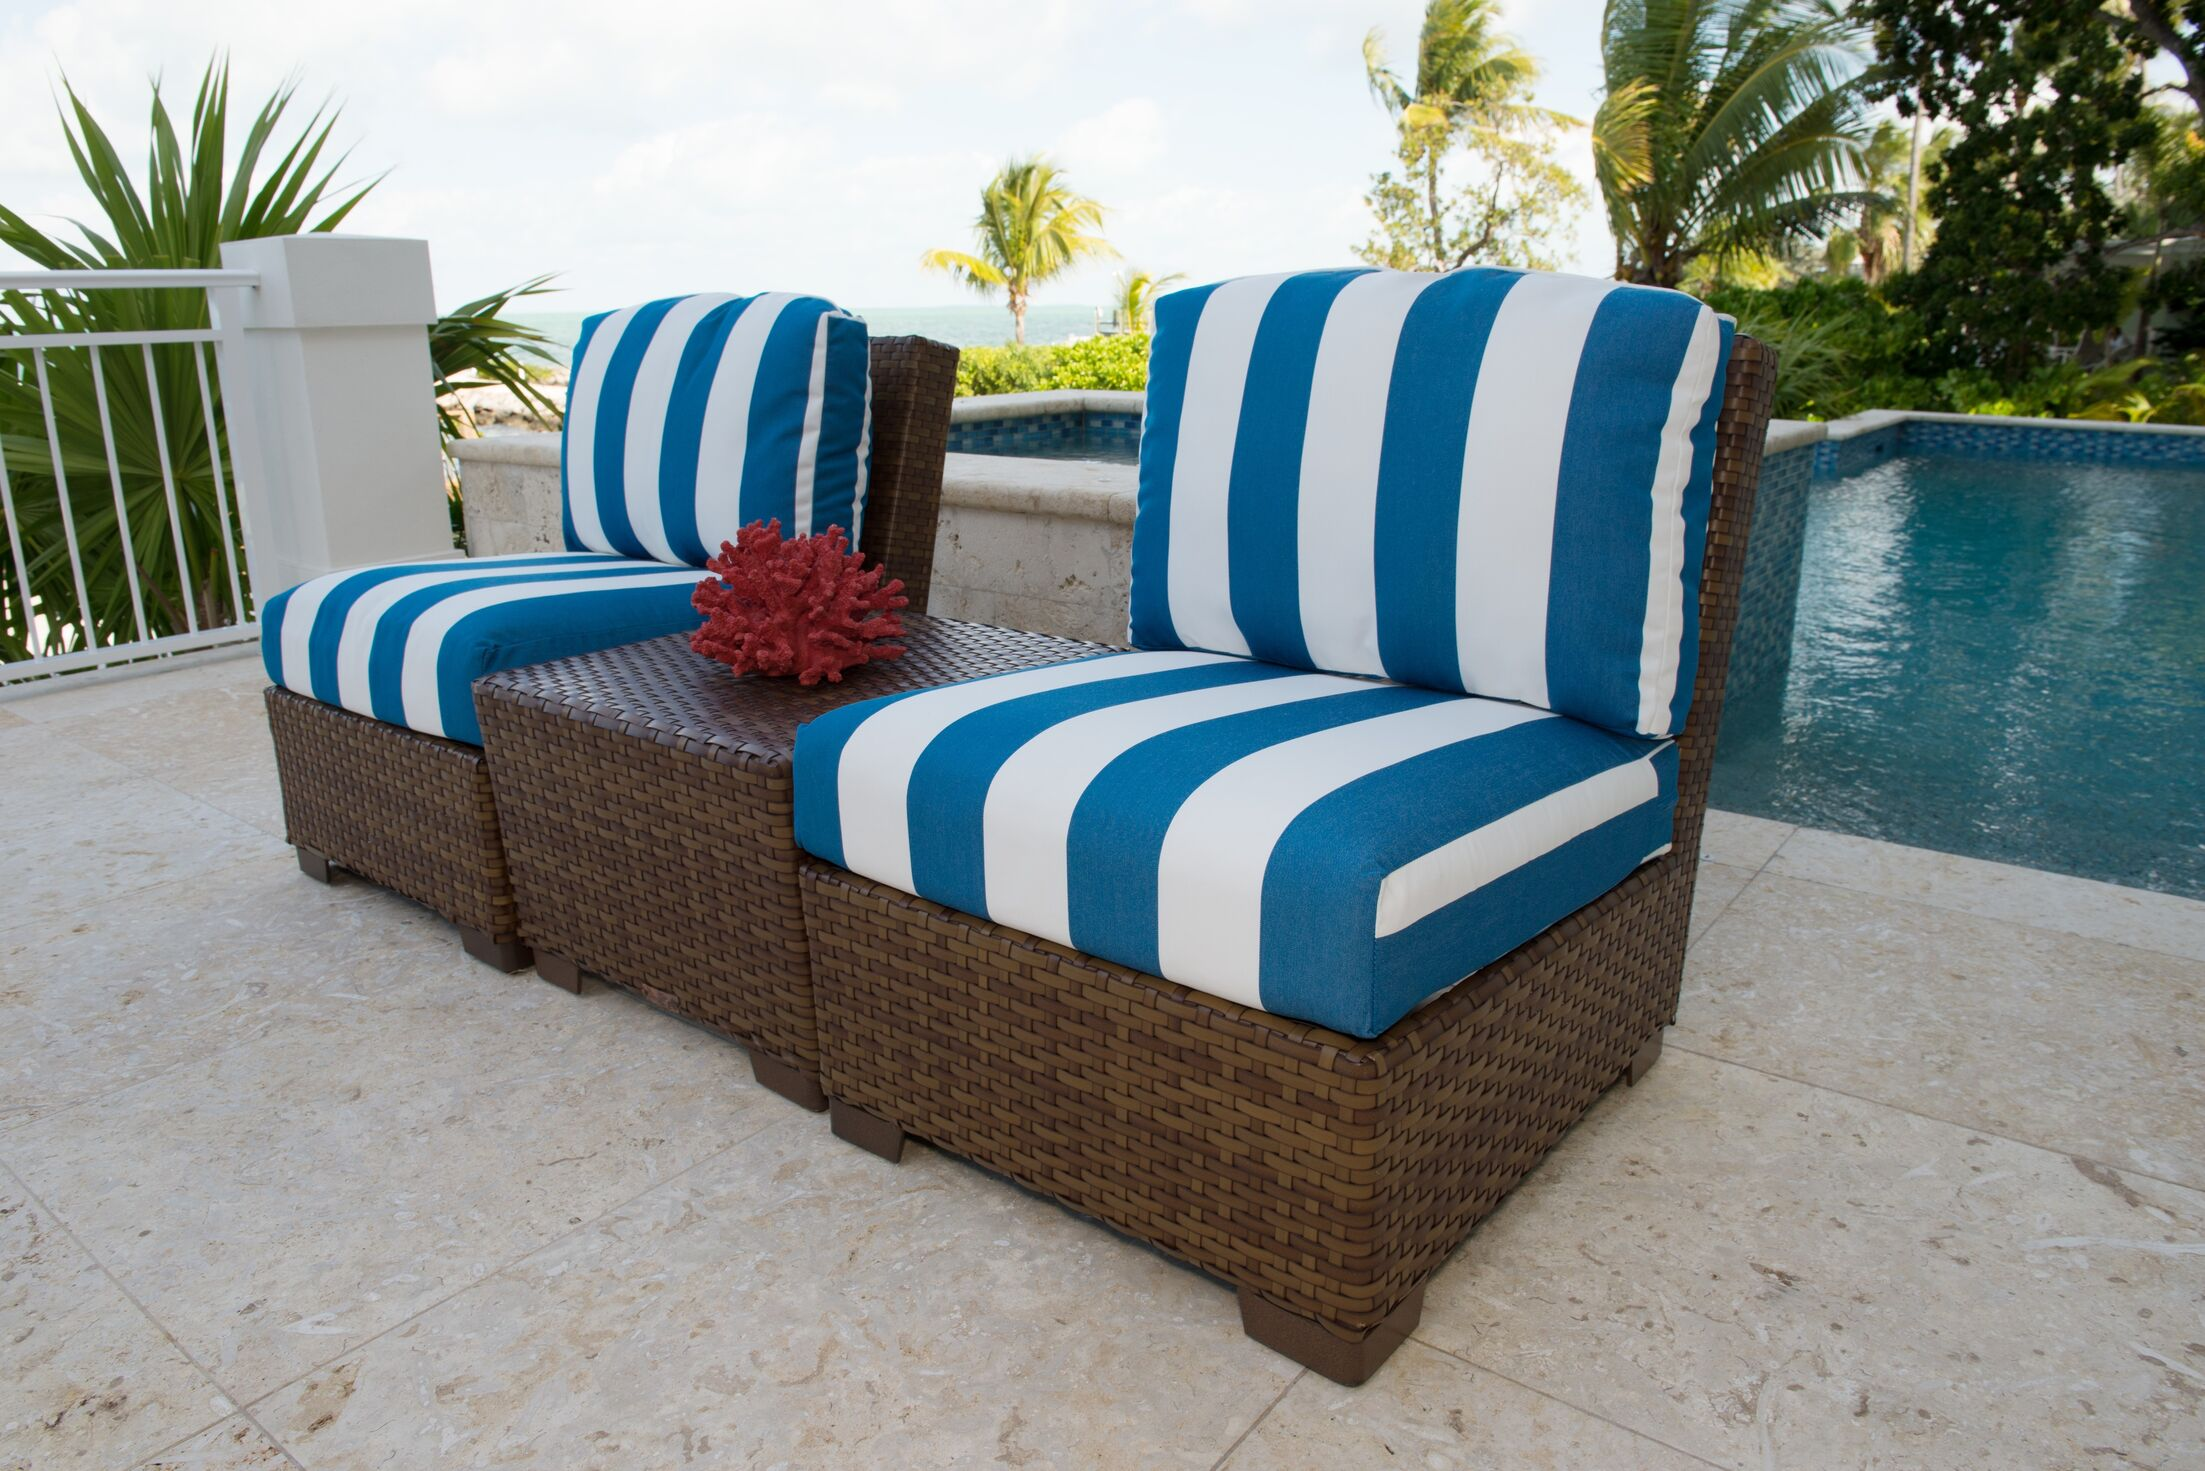 Panama Jack 3 Piece Conversation Set with Cushions